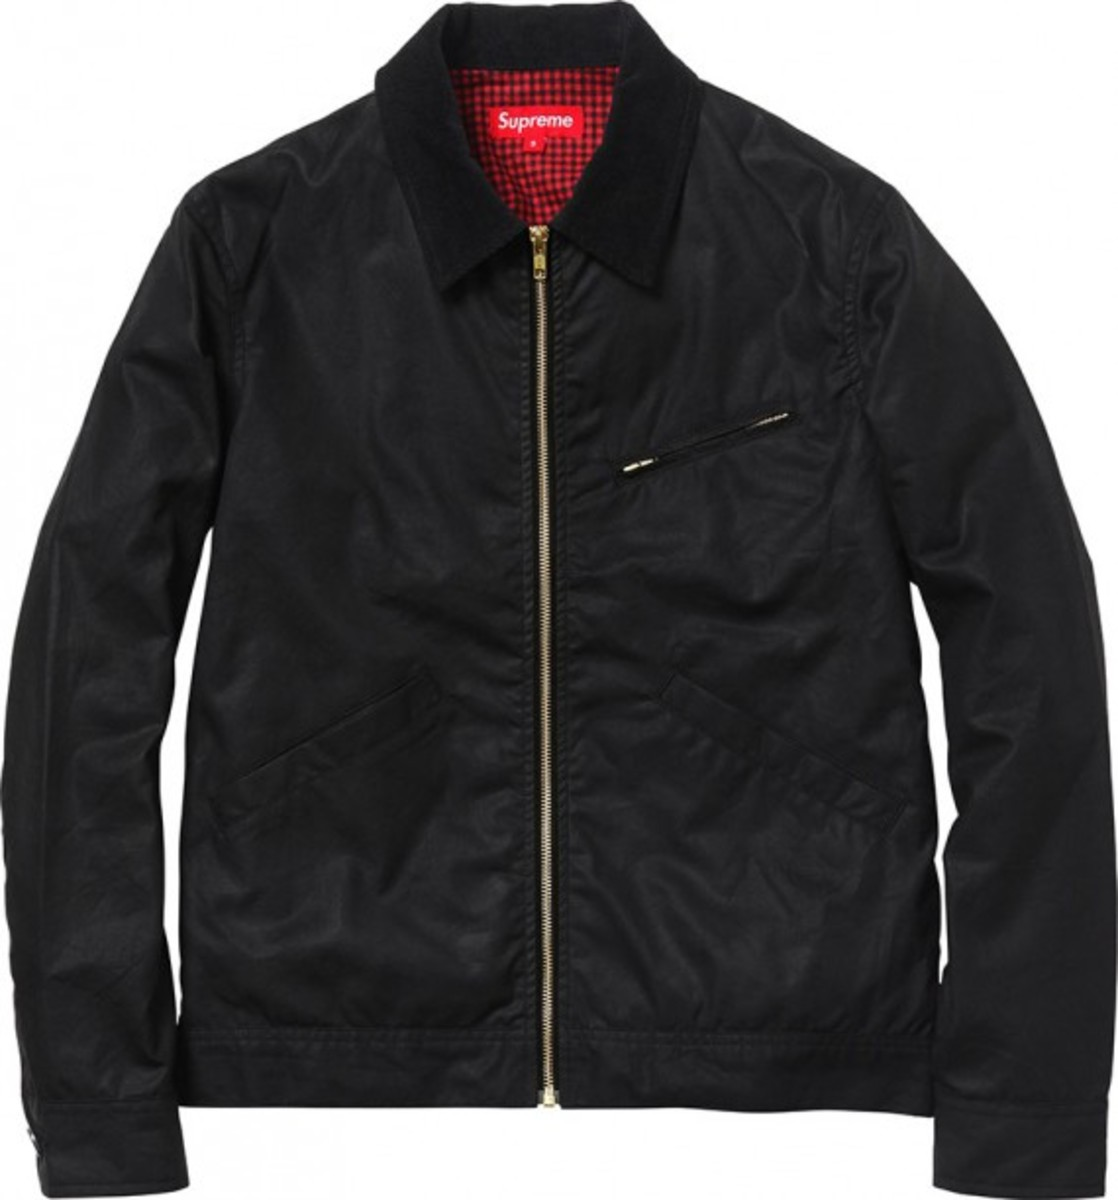 3-workers_jacket-zoom_1345455017